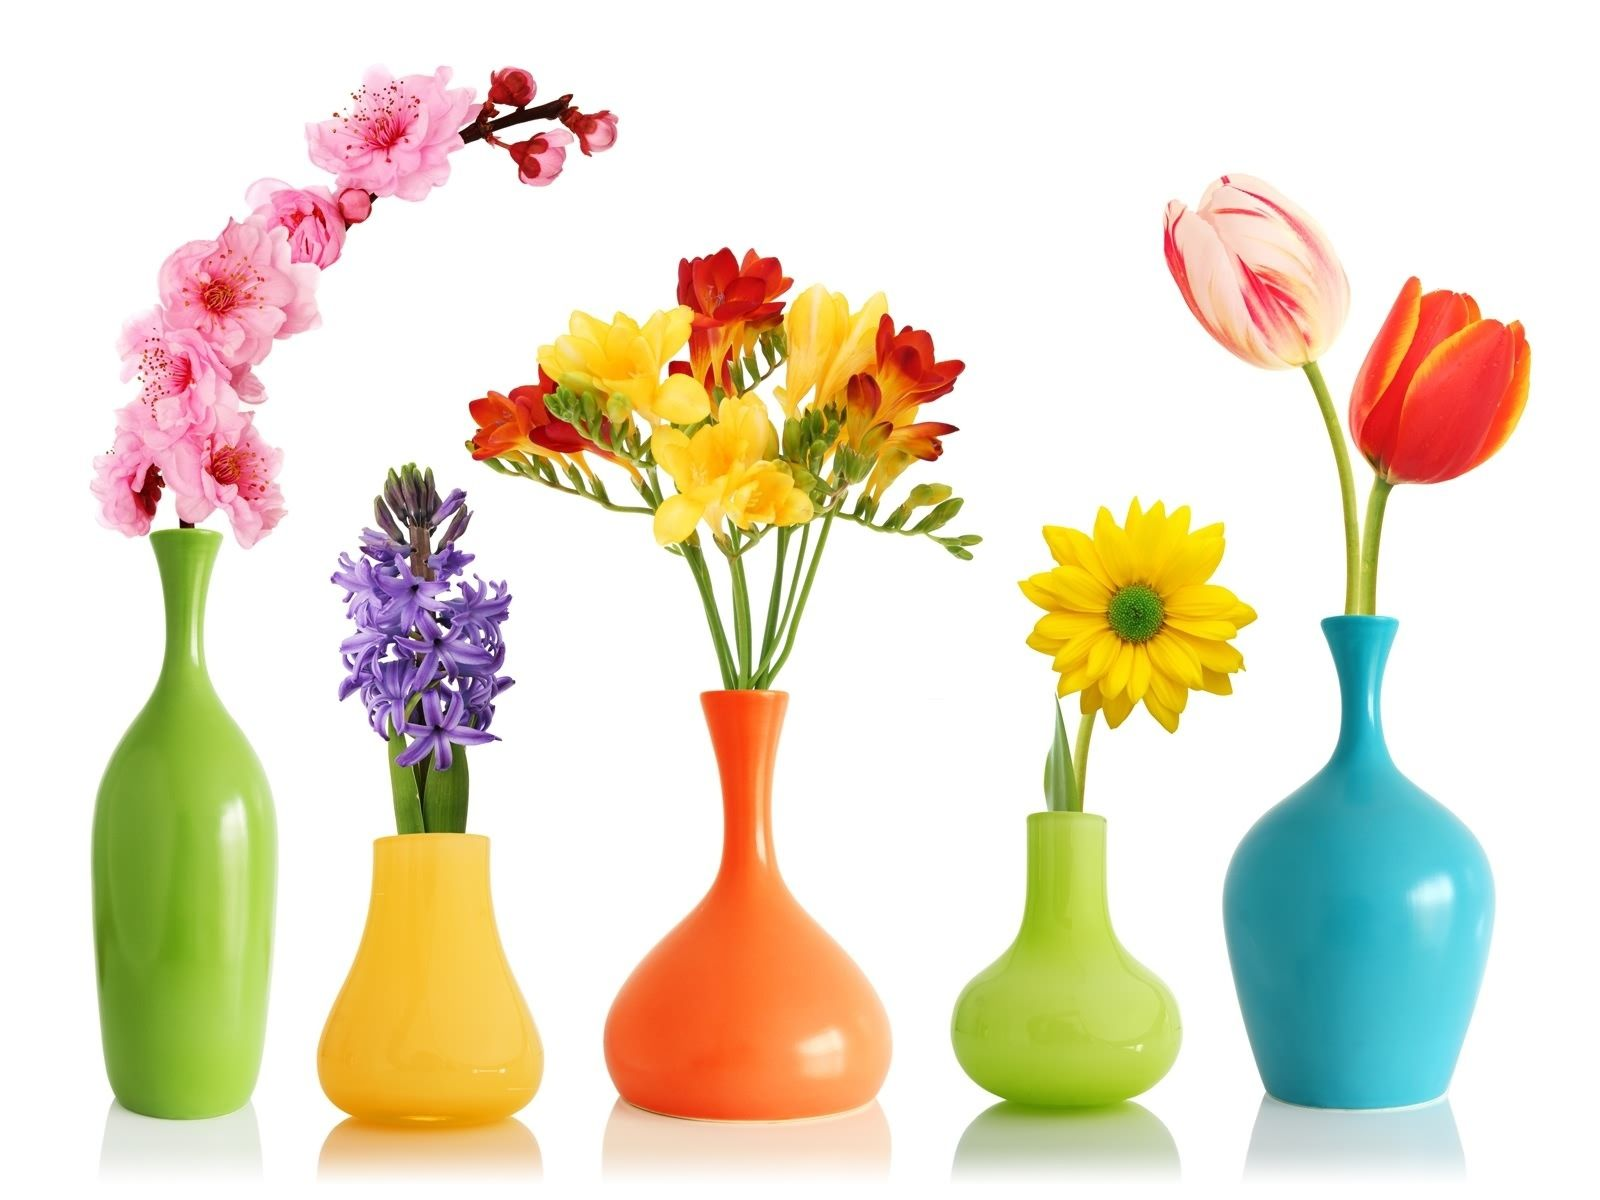 Design Flower Vases vasos coloridos flores coloridas pinterest flowers pics photos colorful in vase wallpaper glass similar